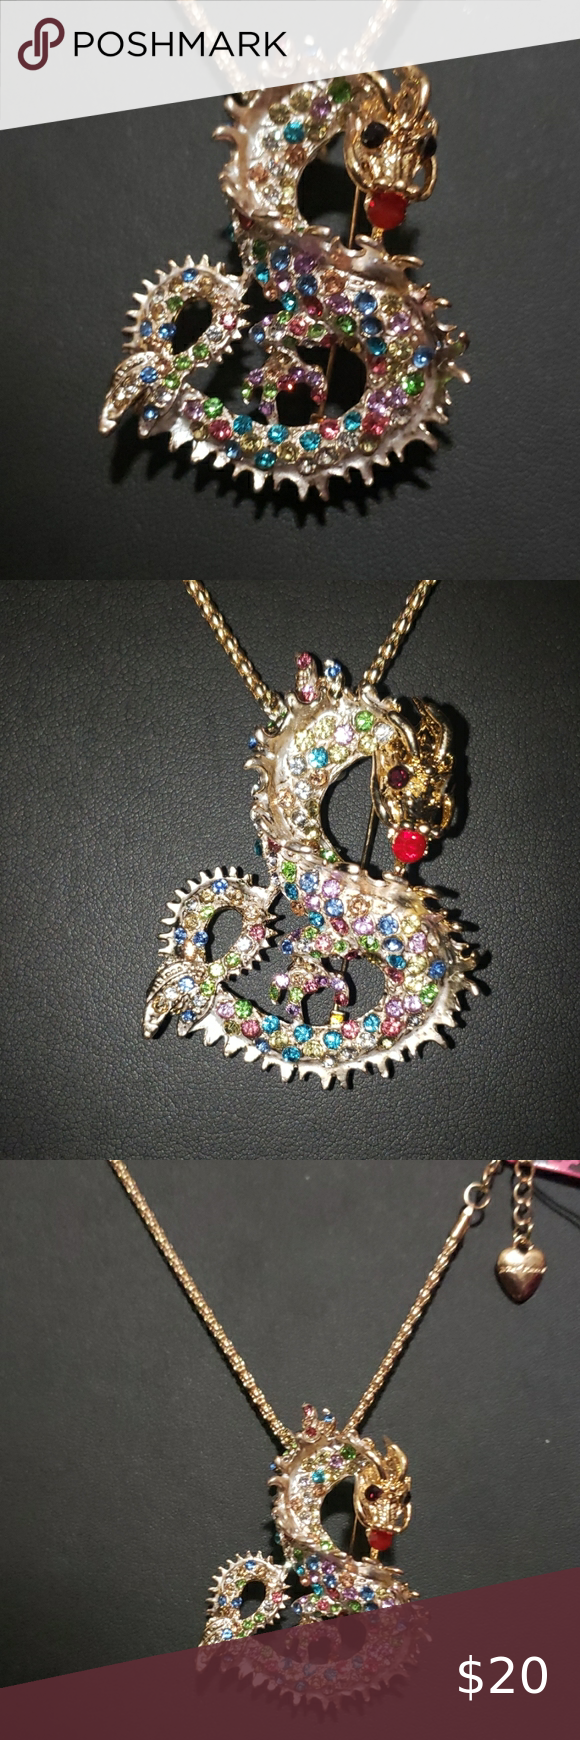 Photo of NWT Crystal Dragon Necklace by Betsey Johnson NWT Unique multicolored …